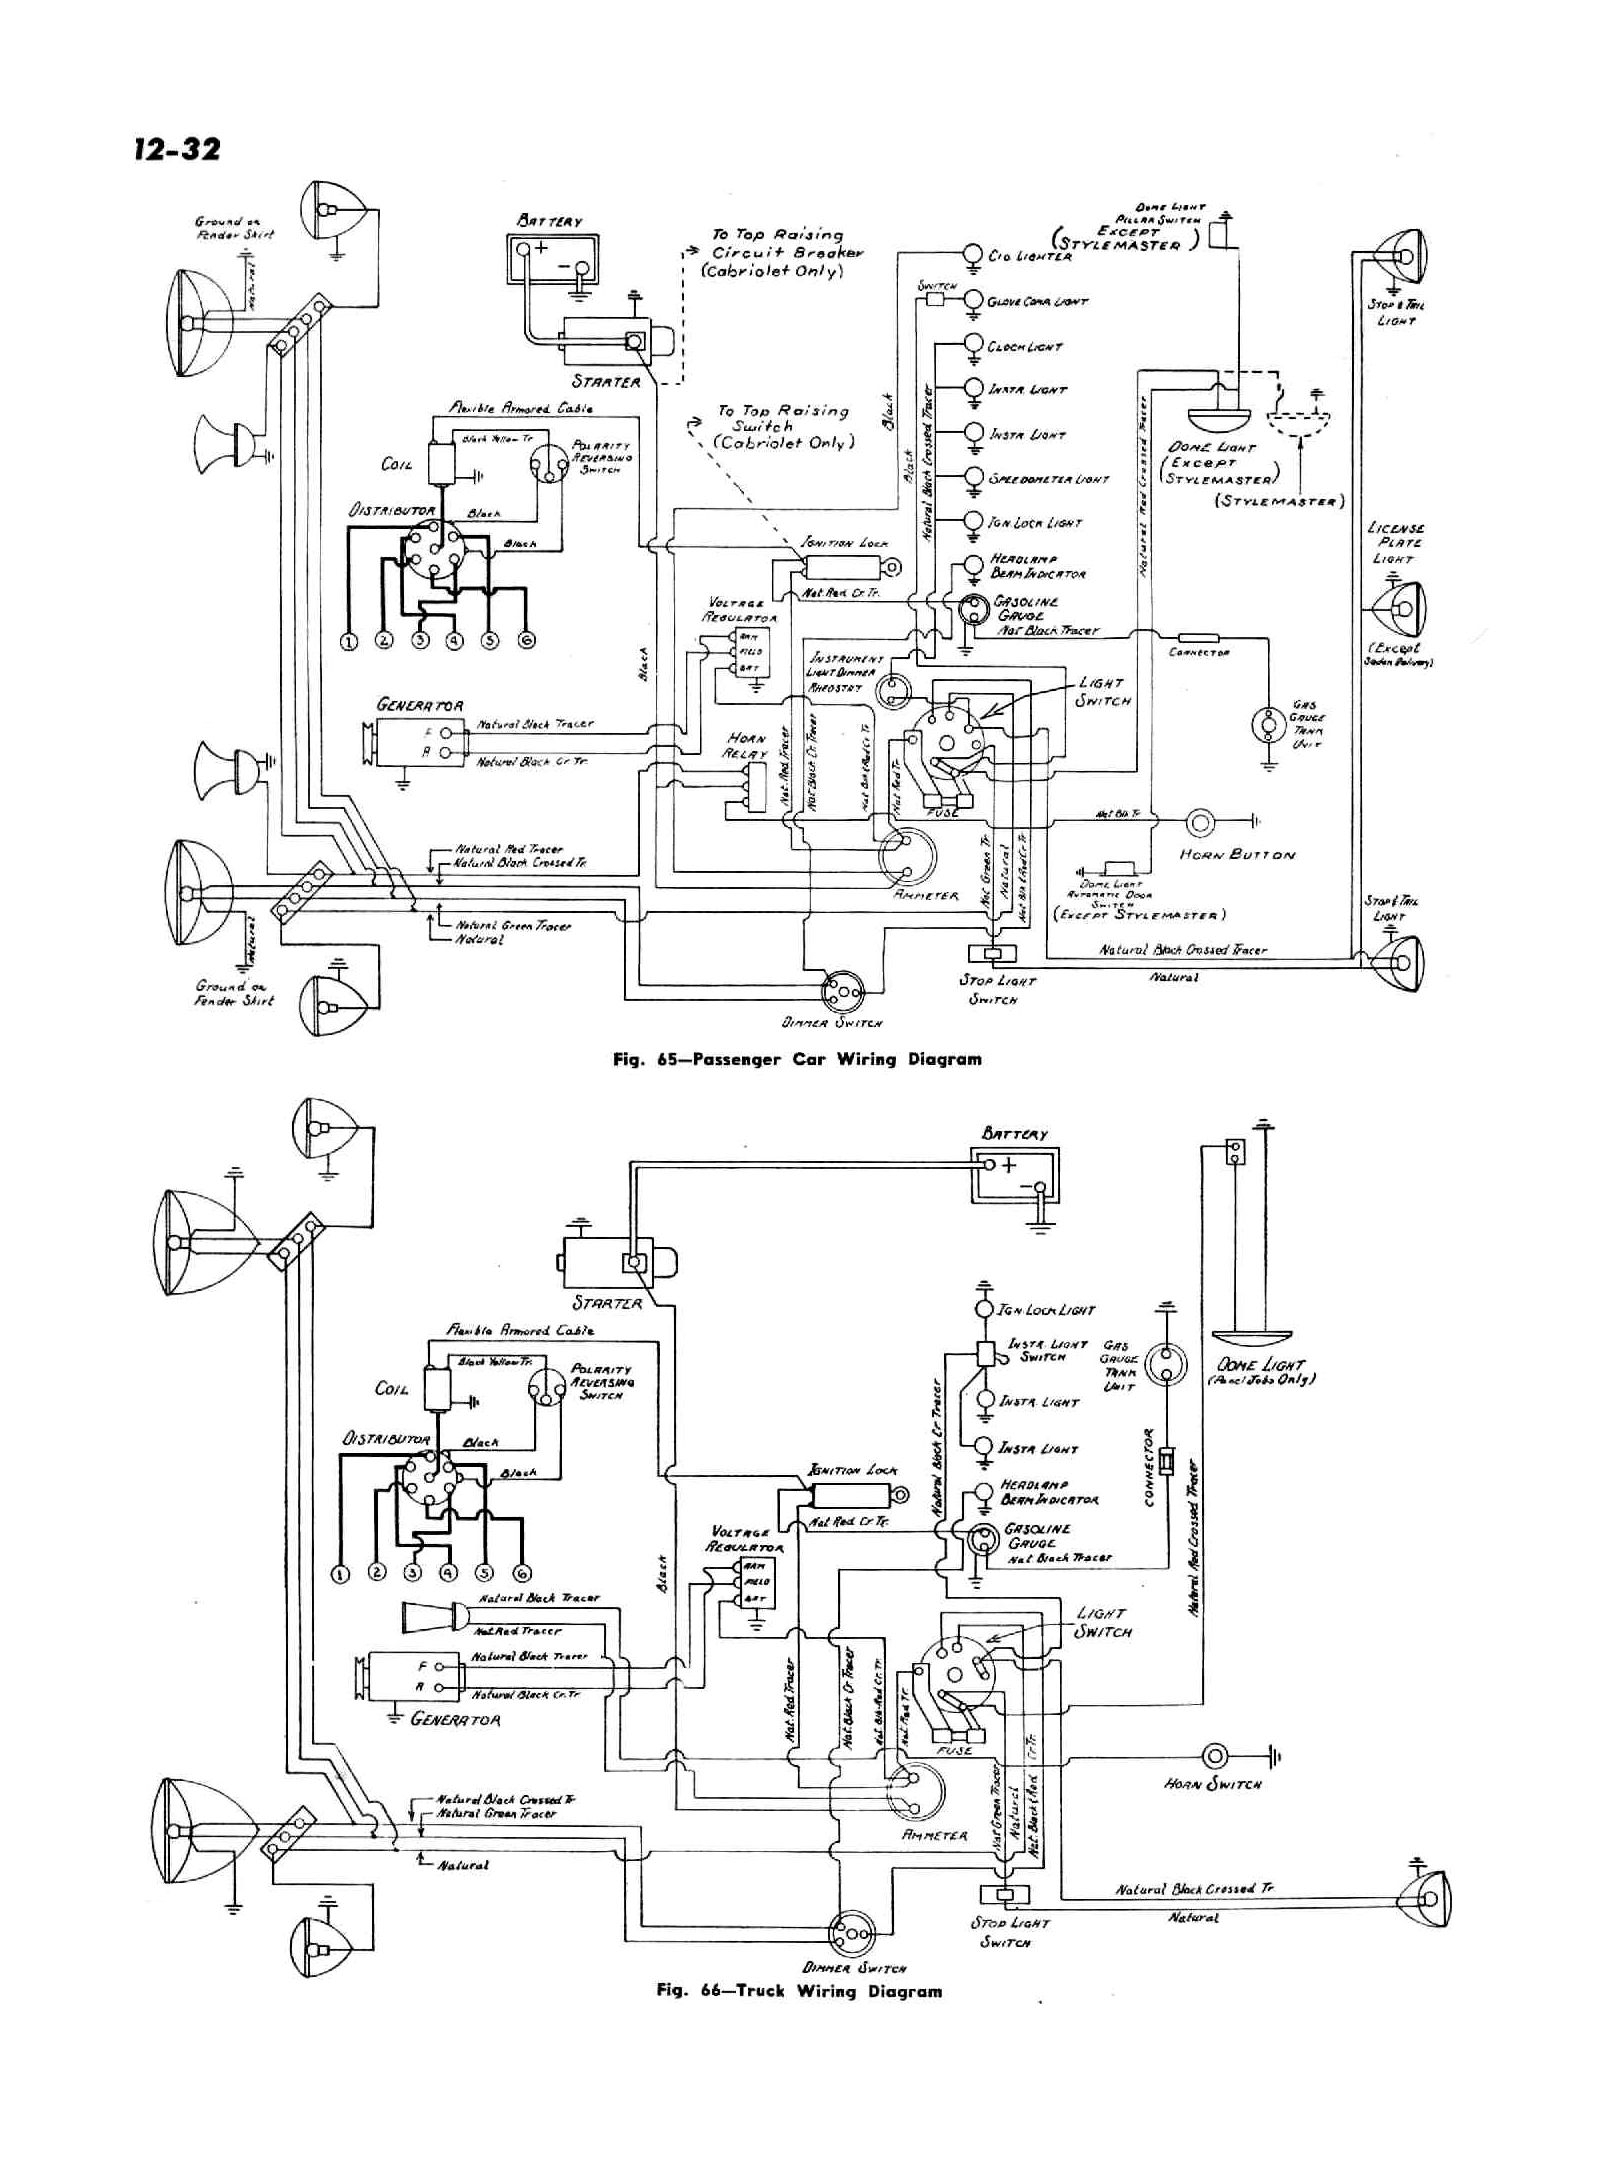 Diagram Mercury Quicksilver Throttle Control Diagram.html